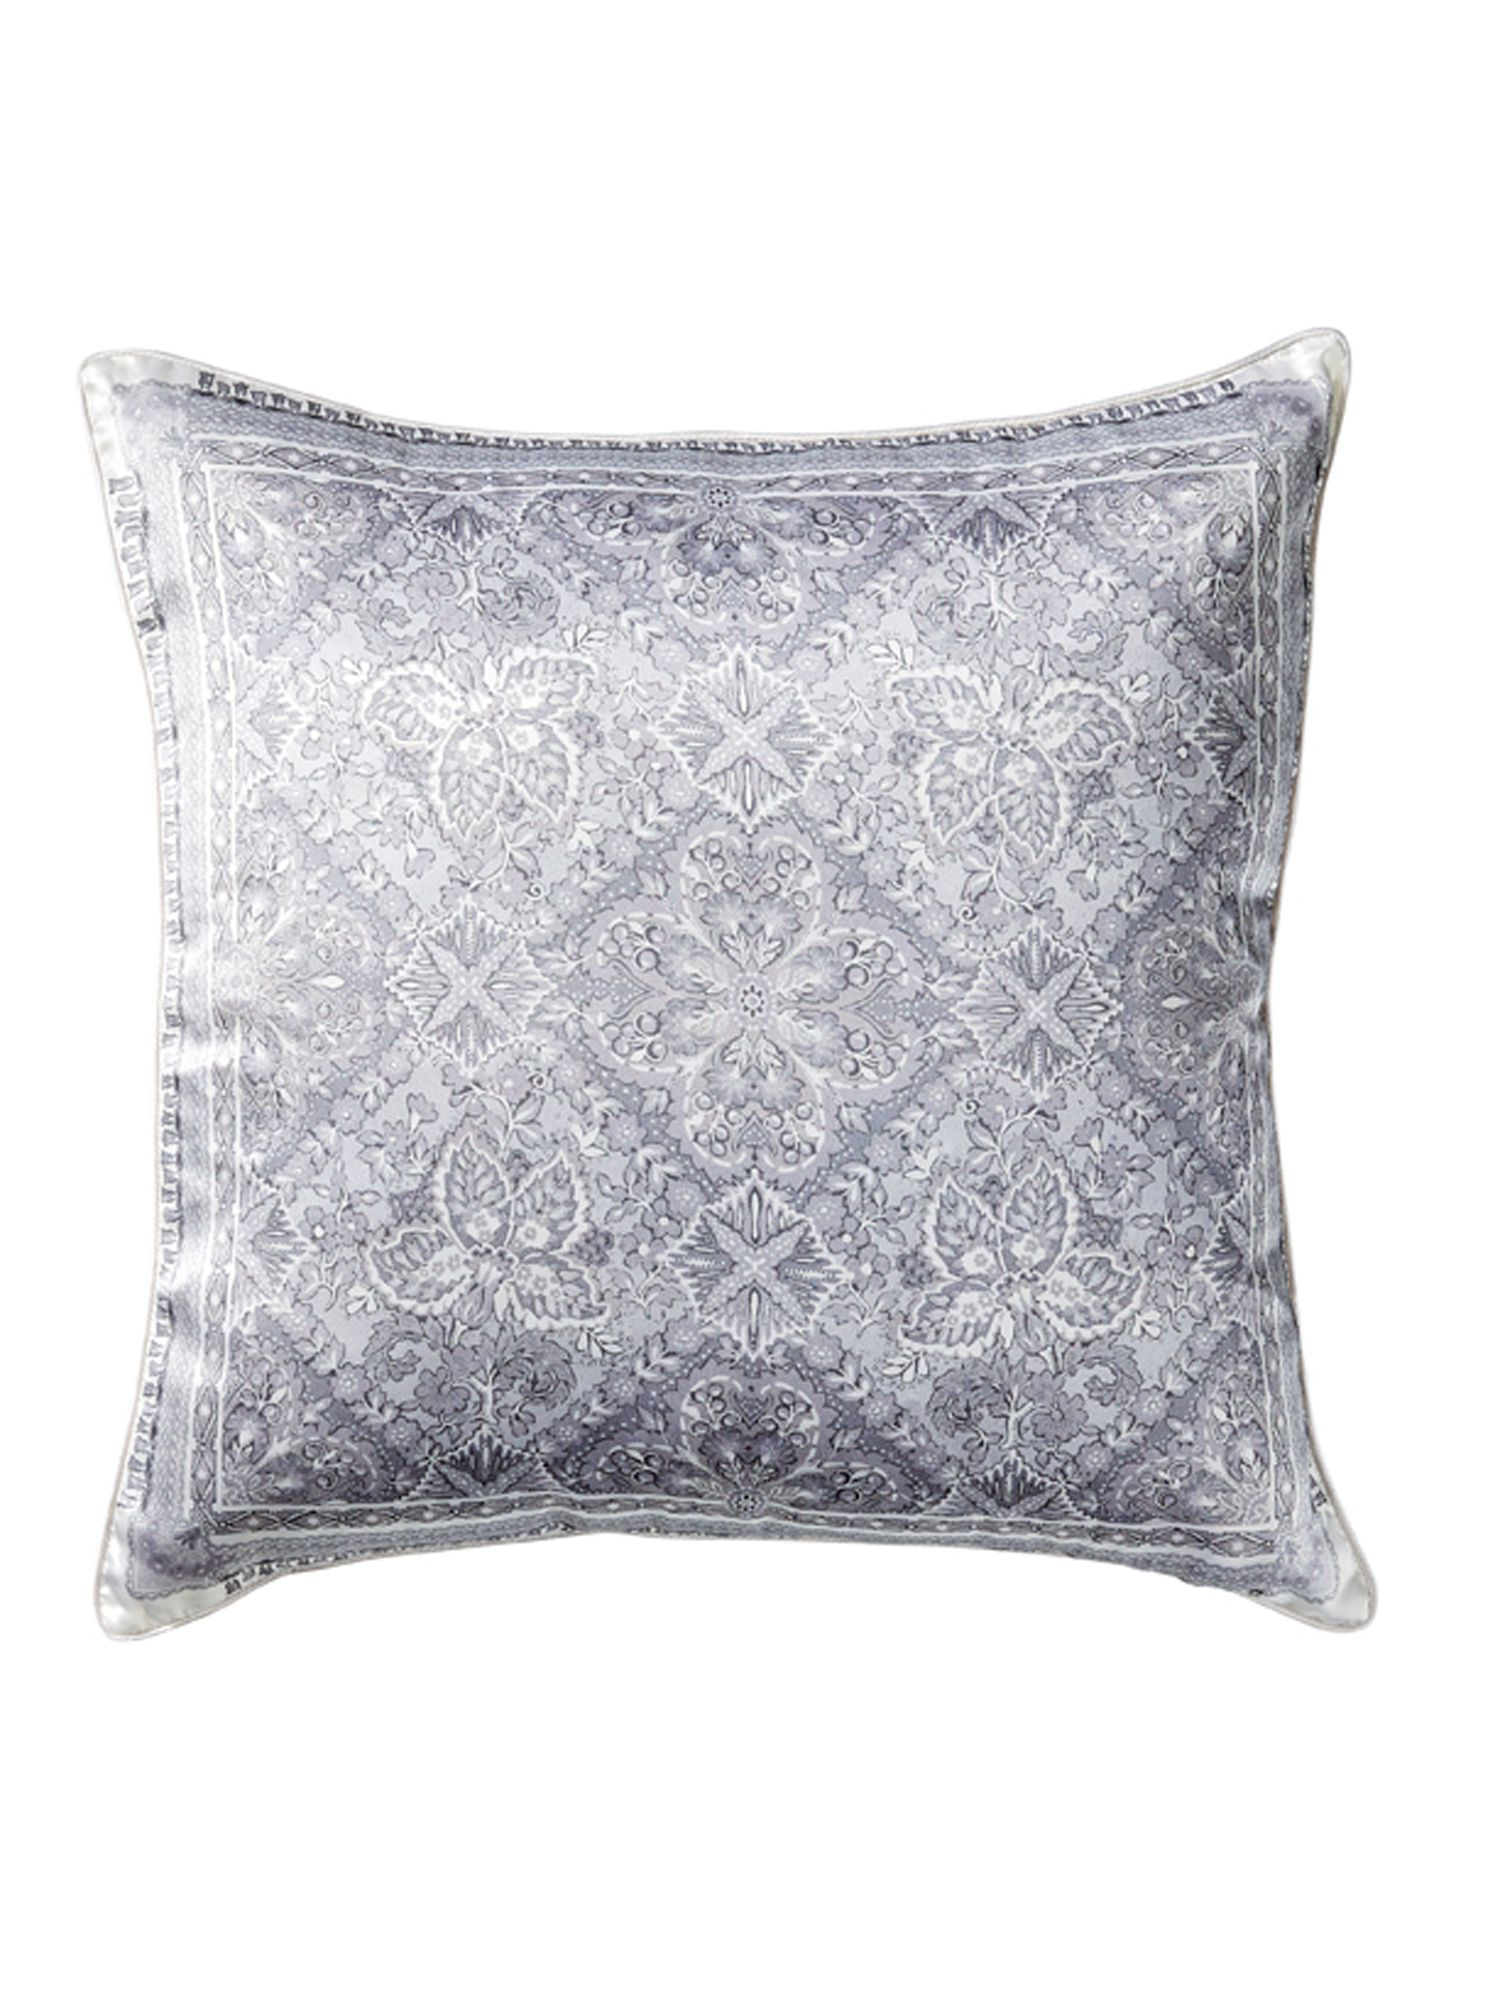 Godot ivory cushion, 100% silk